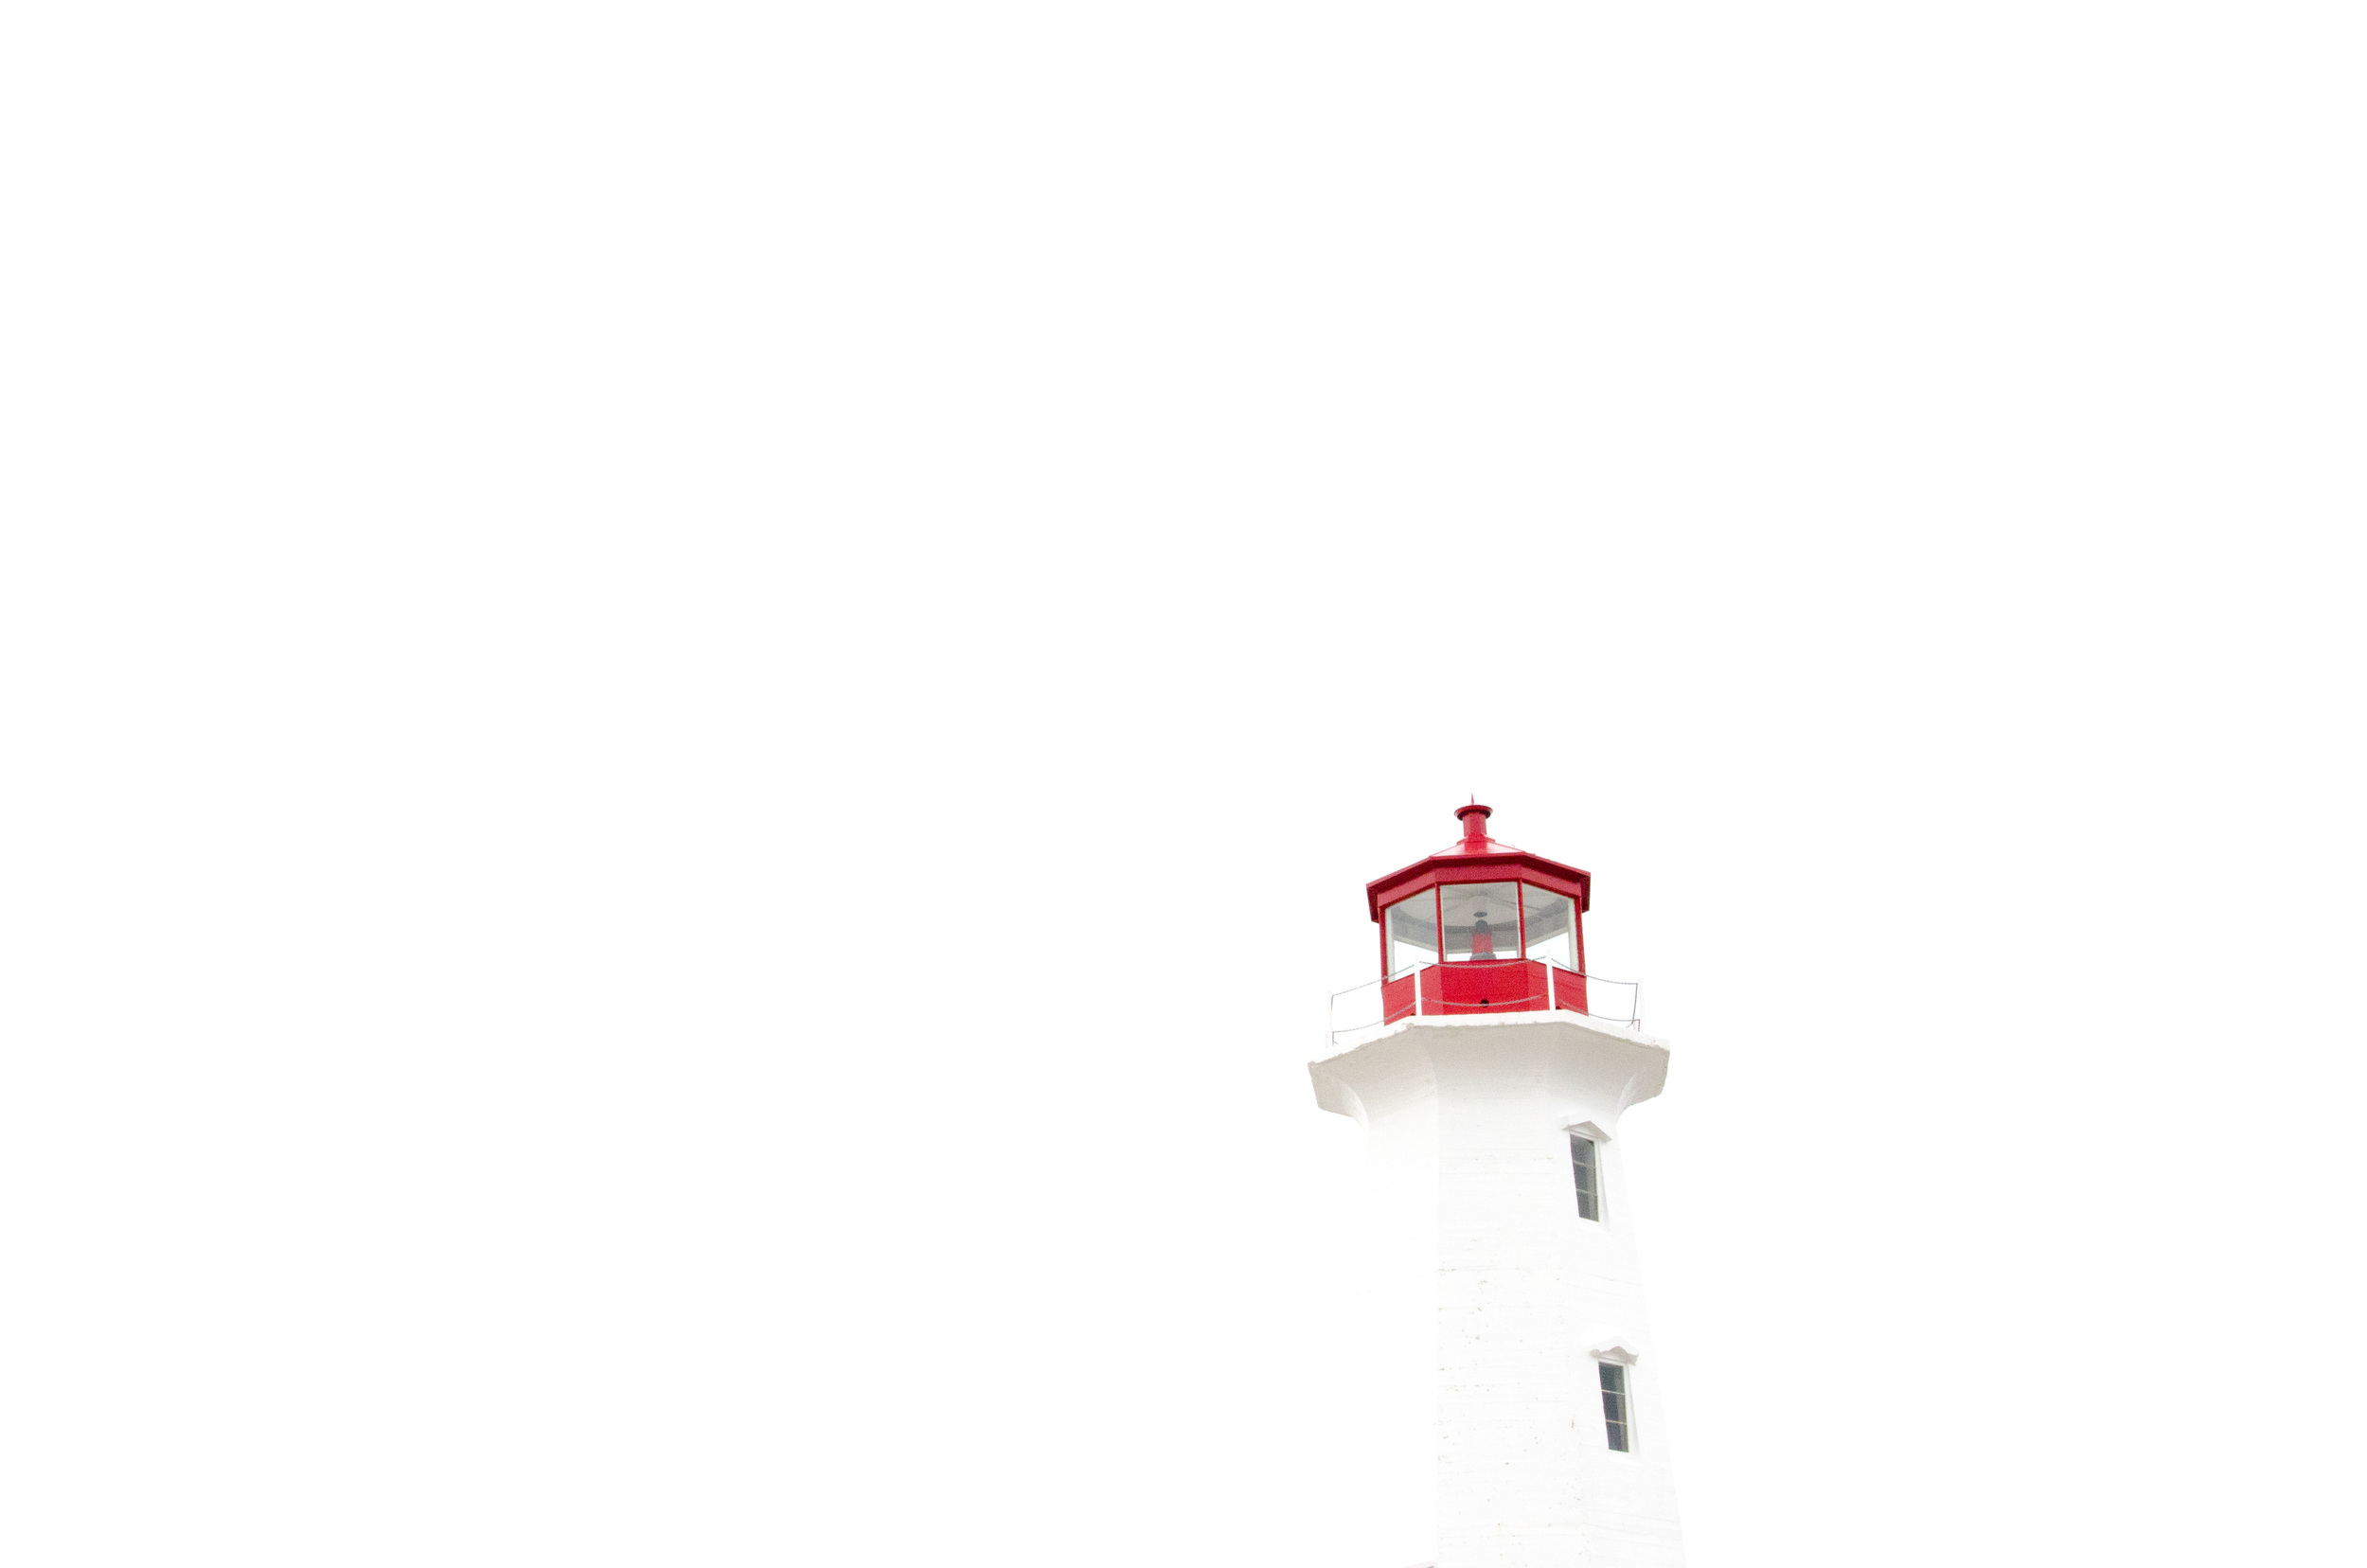 Peggy's Cove Lighthouse Negative Space